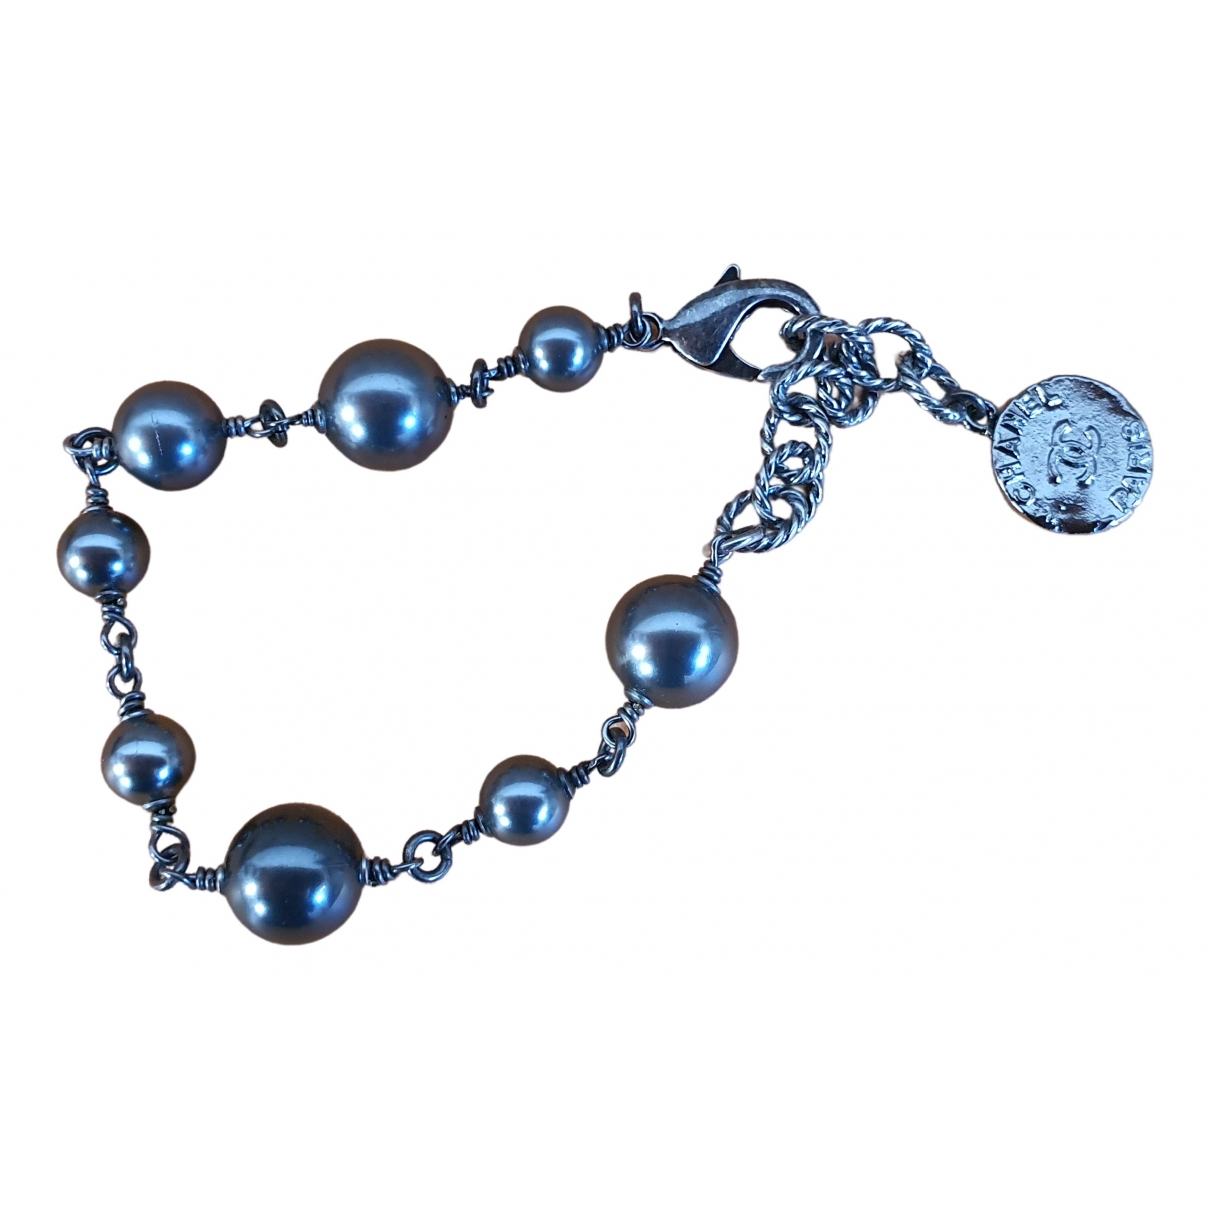 Chanel \N Armband in  Bunt Metall